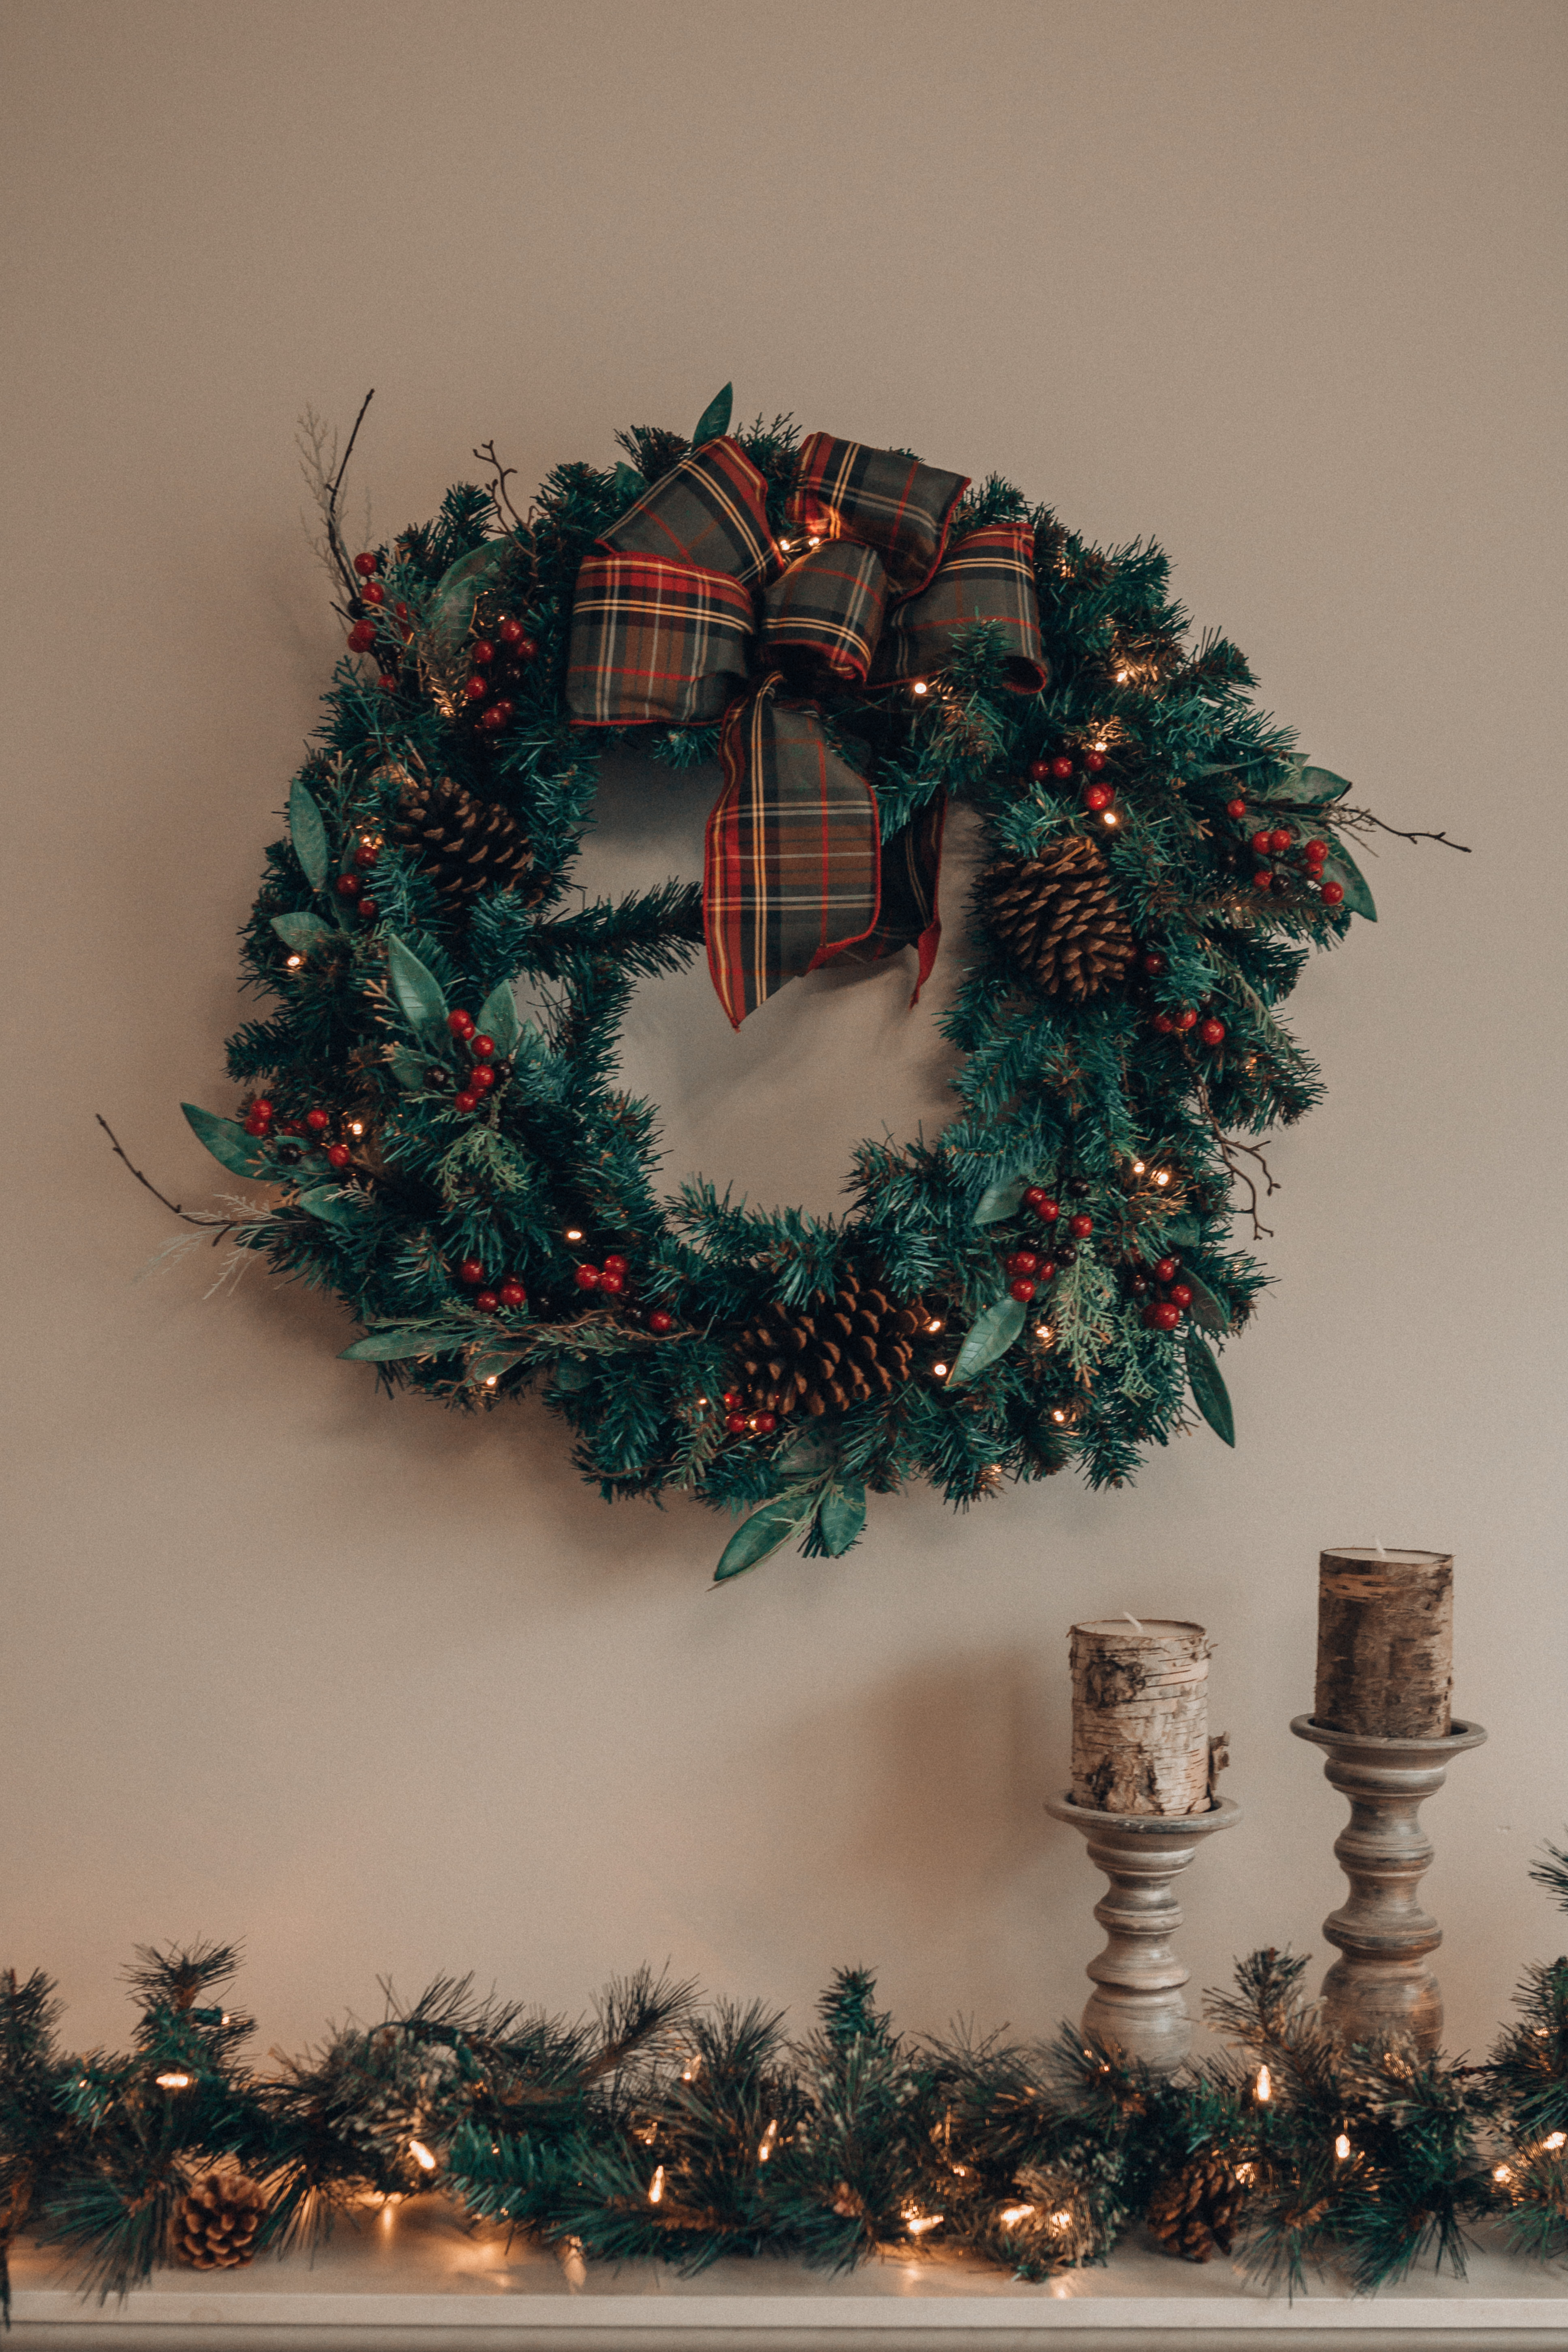 Holiday Decorating | Christmas Wreath | The Home Depot| Holiday Decor